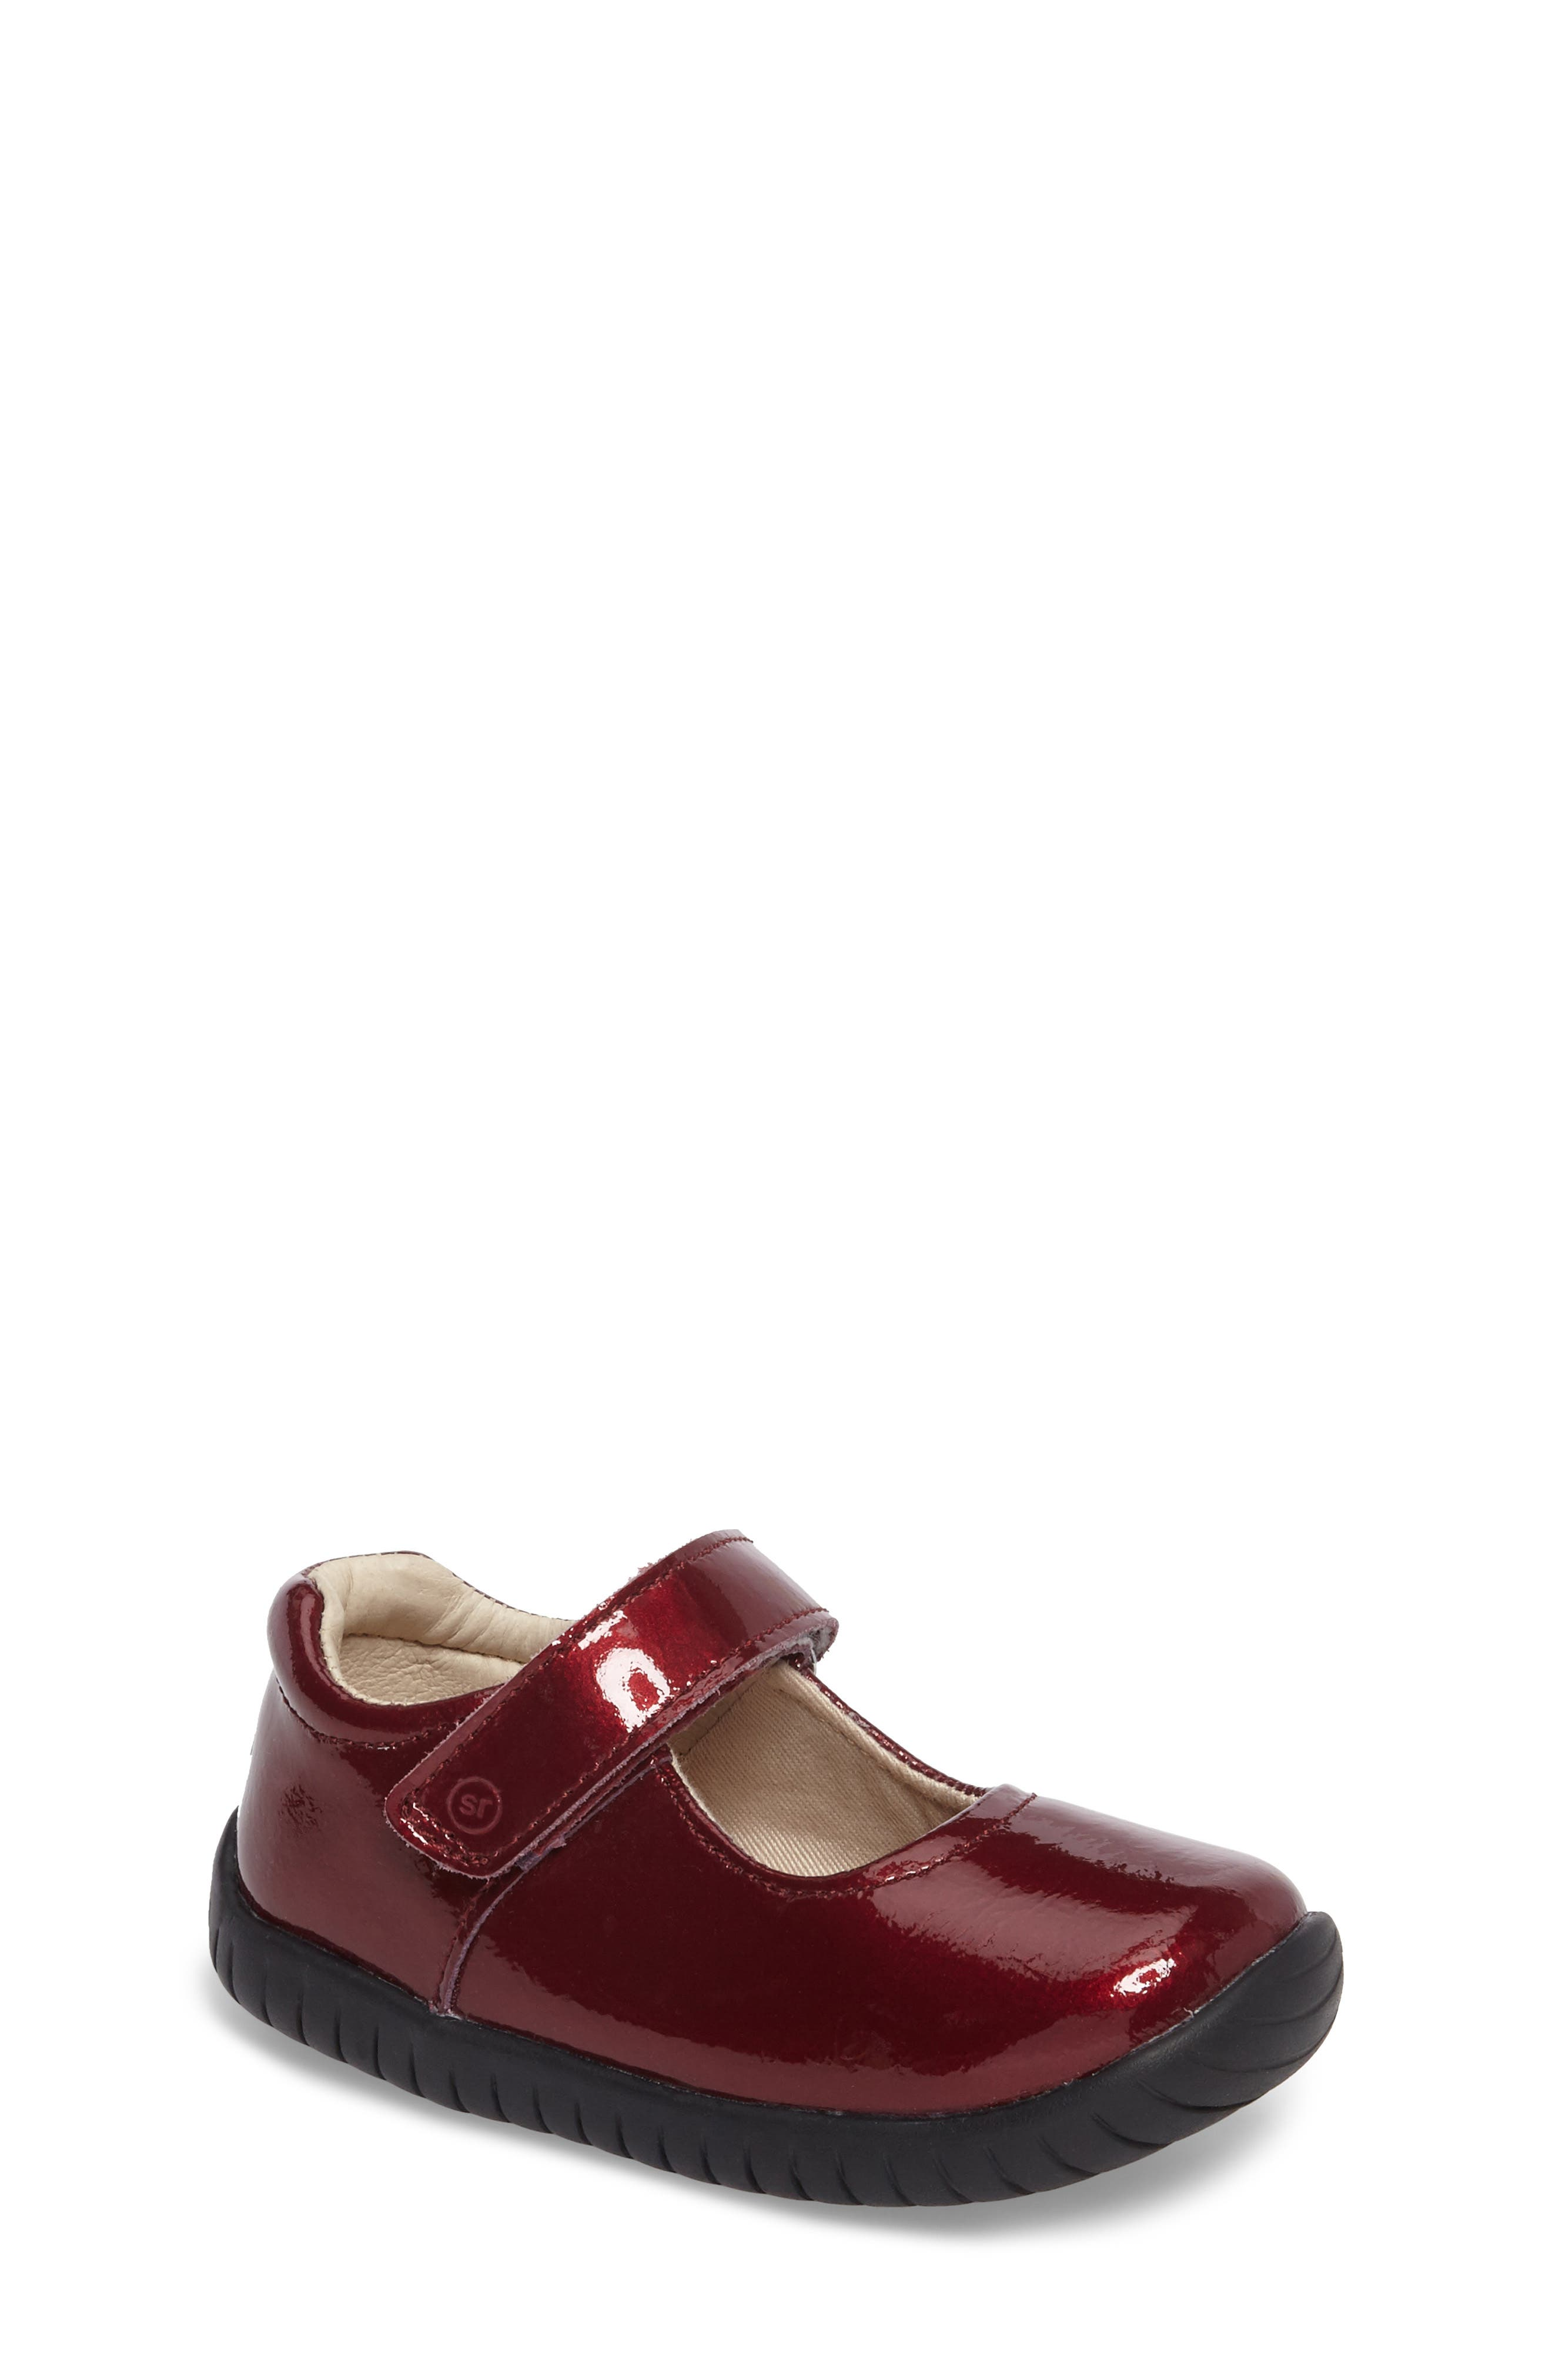 Maya Mary Jane Flat,                             Main thumbnail 1, color,                             Burgundy Patent Leather